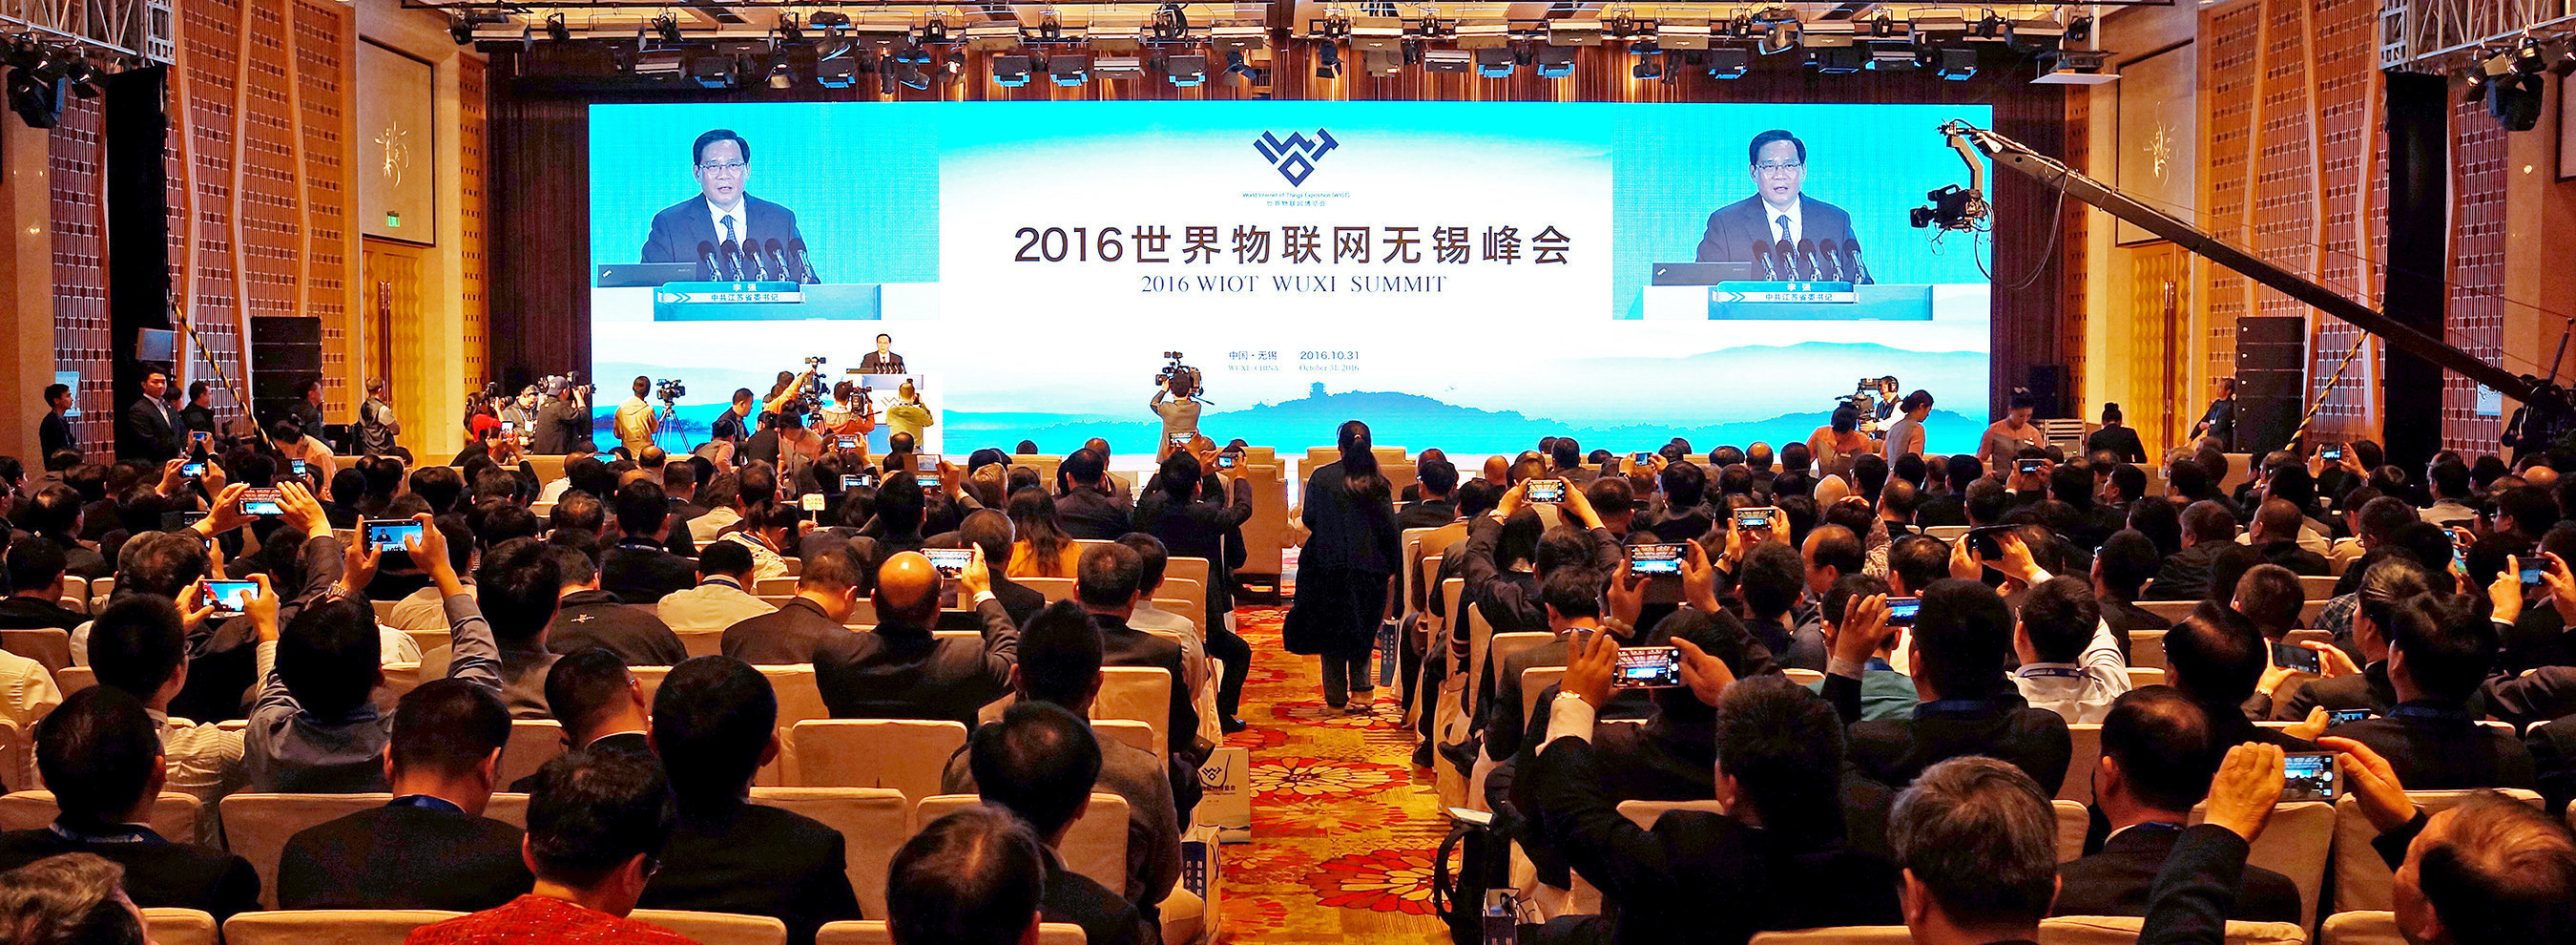 Secretary of a Provincial Party Committee of Jiangsu Province, Li Qiang giving speech at 2016 World Internet of Things Exposition.